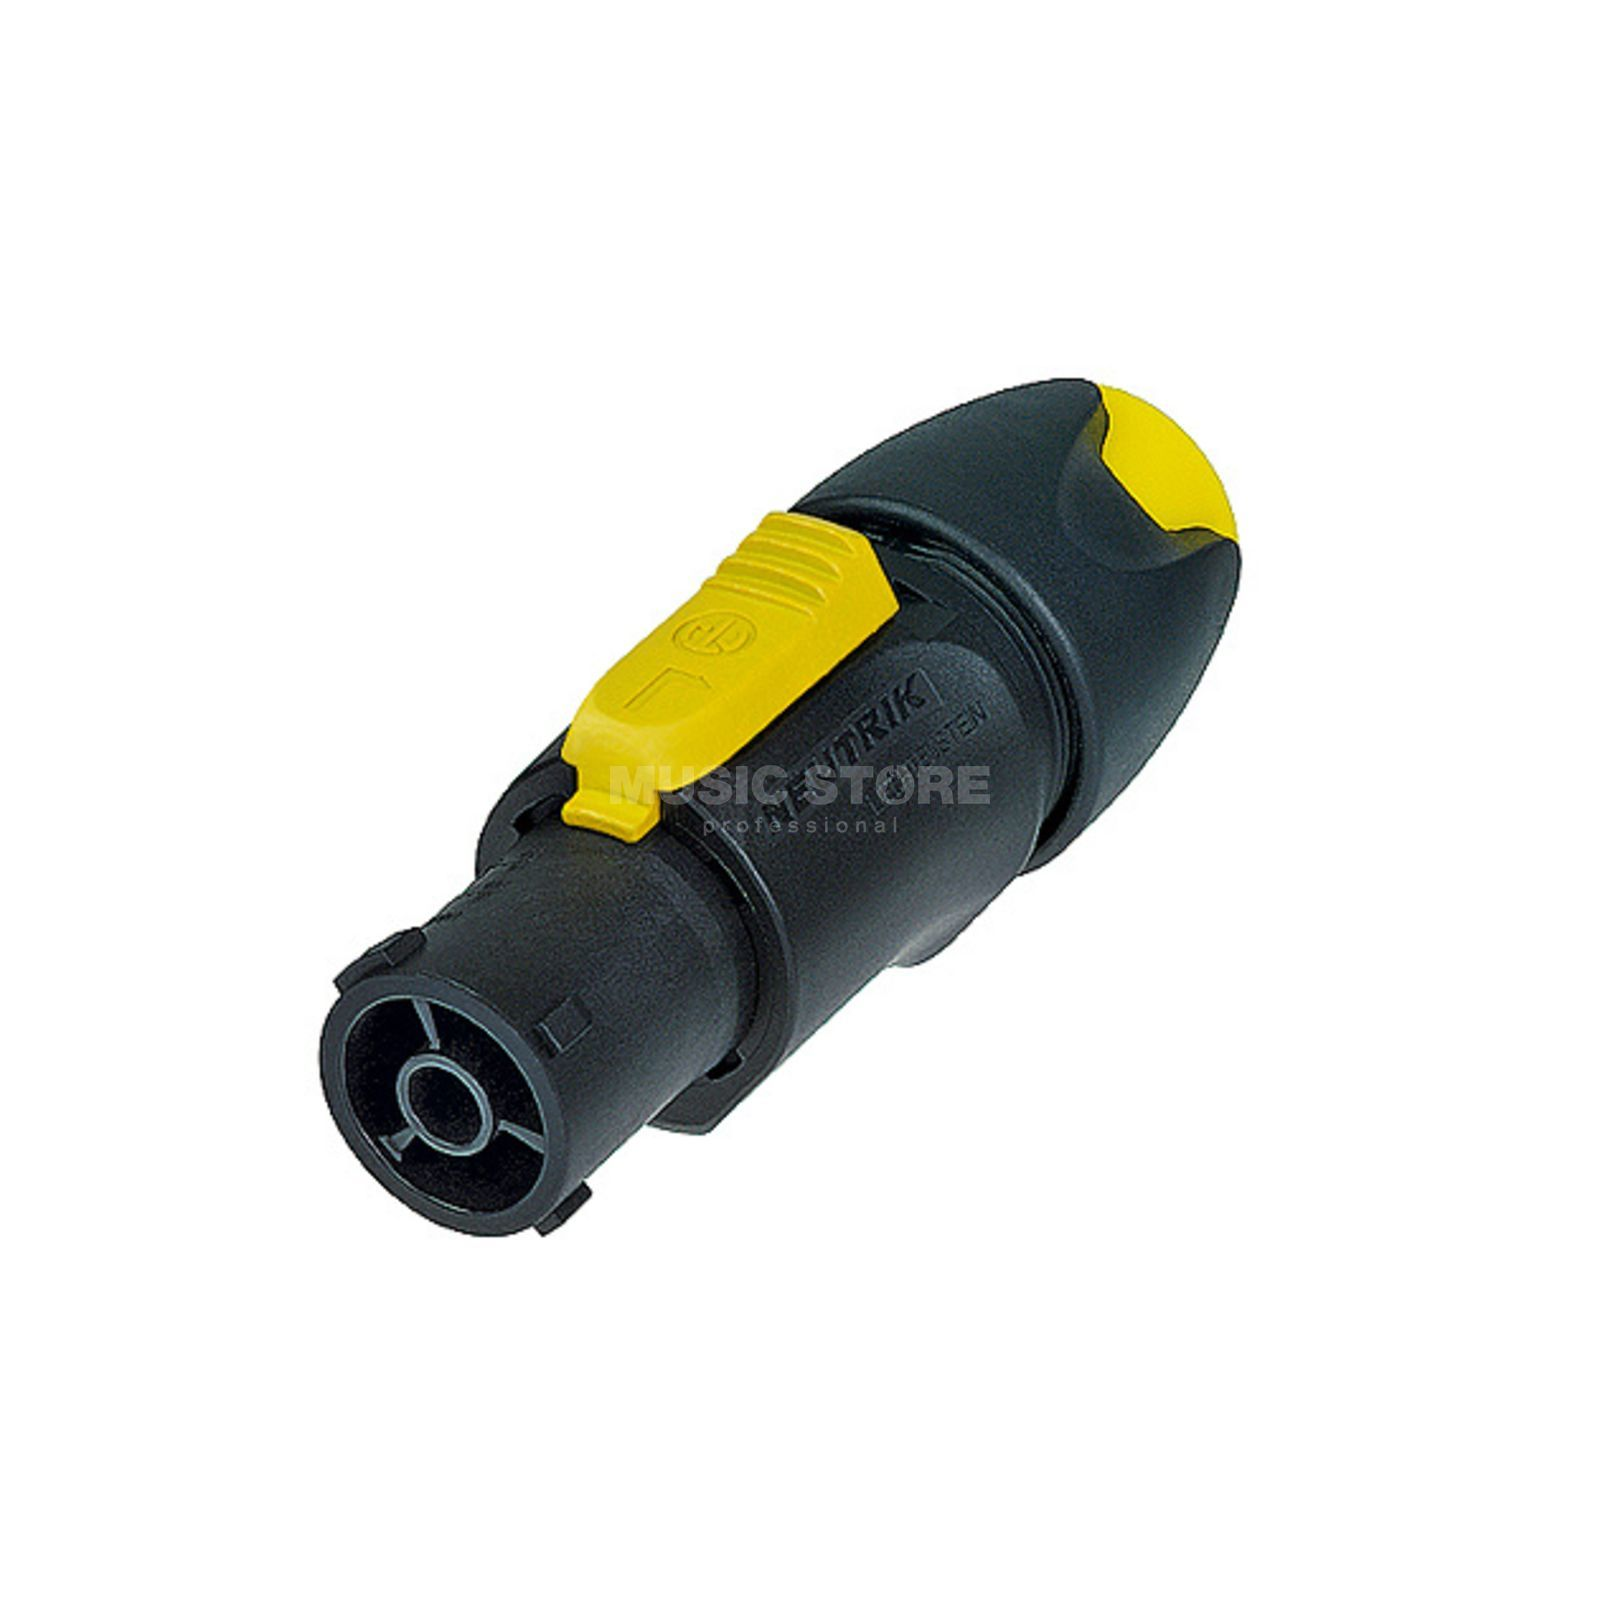 Neutrik NAC3FX Female Cable Connector powerCON TRUE1 Produktbillede